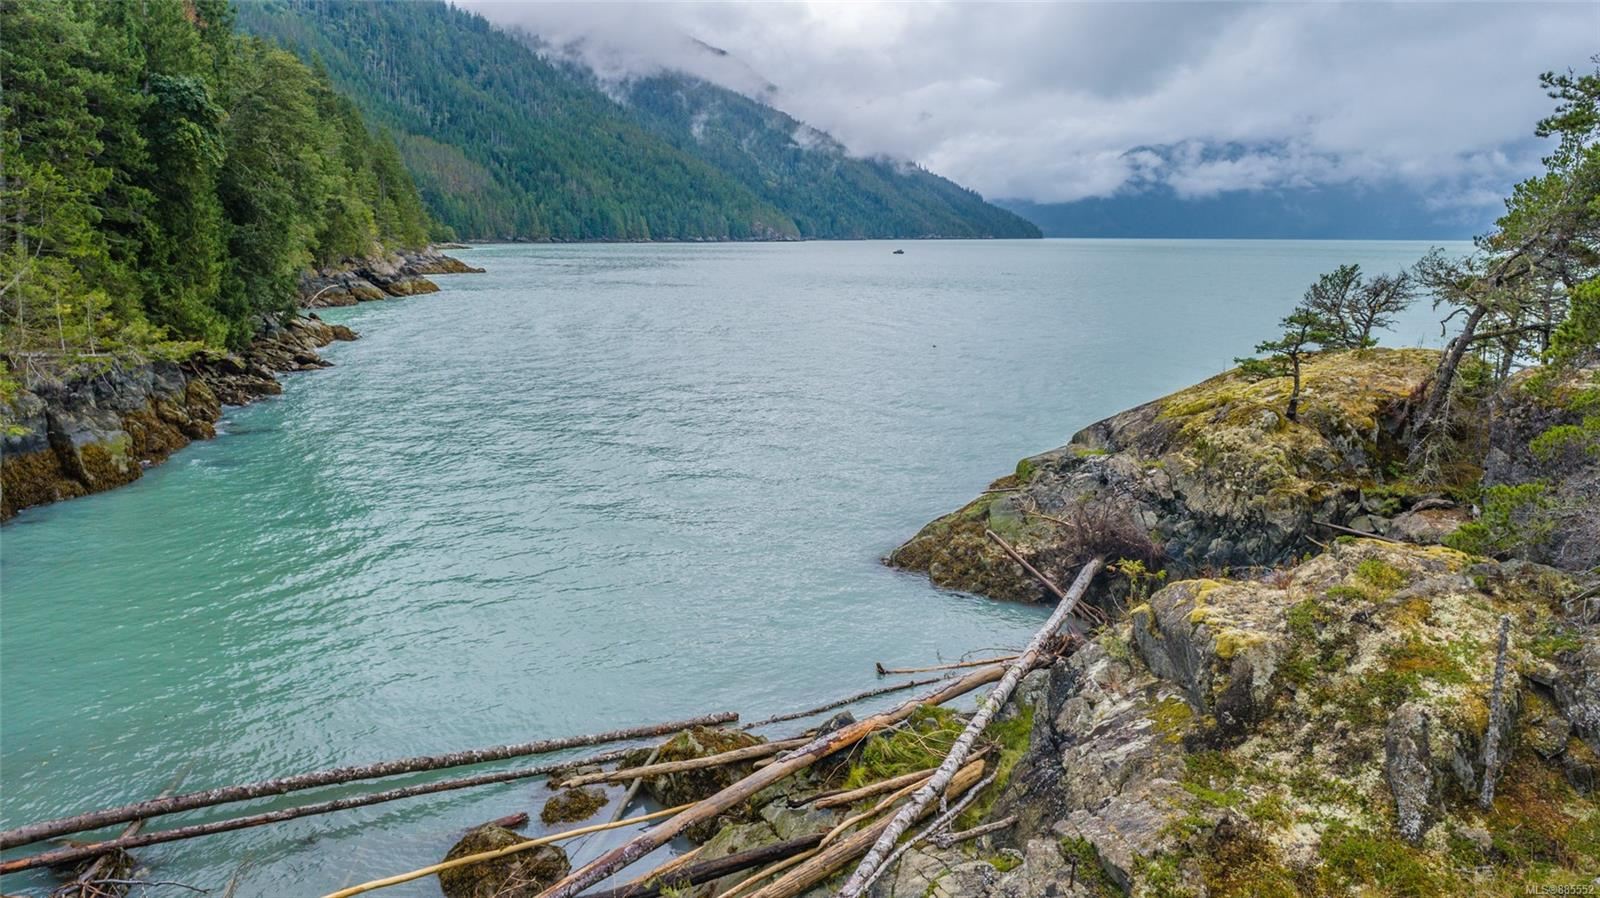 DL 2515 Bute Inlet - Isl Small Islands (Campbell River Area) Land for sale(885552) #55